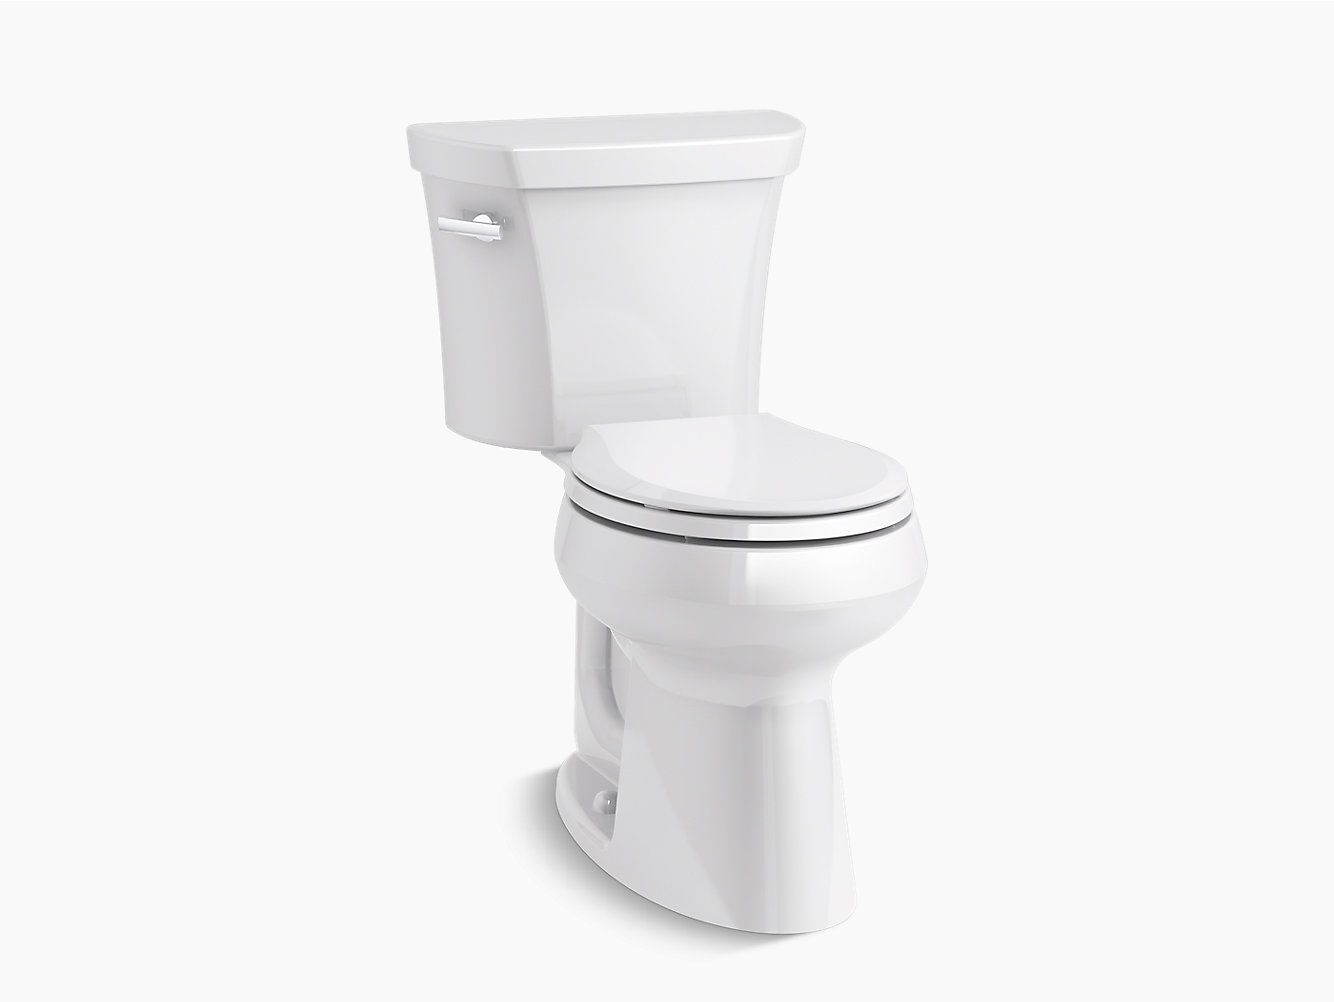 Https Www Us Kohler Com Us Highline Comfort Height Two Piece Round Front 1 28 Gpf Toilet With Class Five Flush Techn Kitchen And Bath Remodeling Toilet Flush